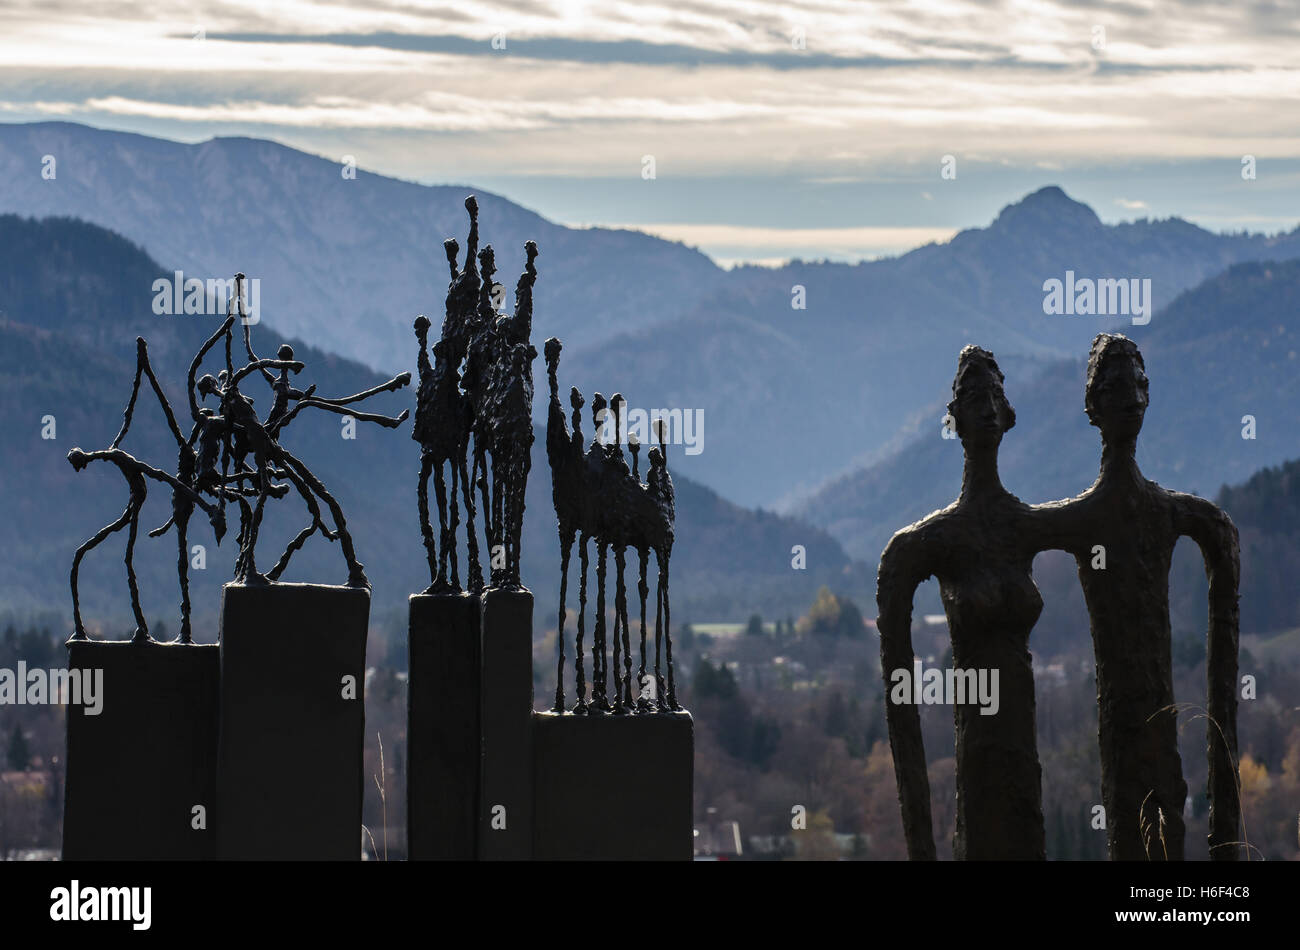 silouettes of human figures against the mountains near Lake Tegernsee - Stock Image